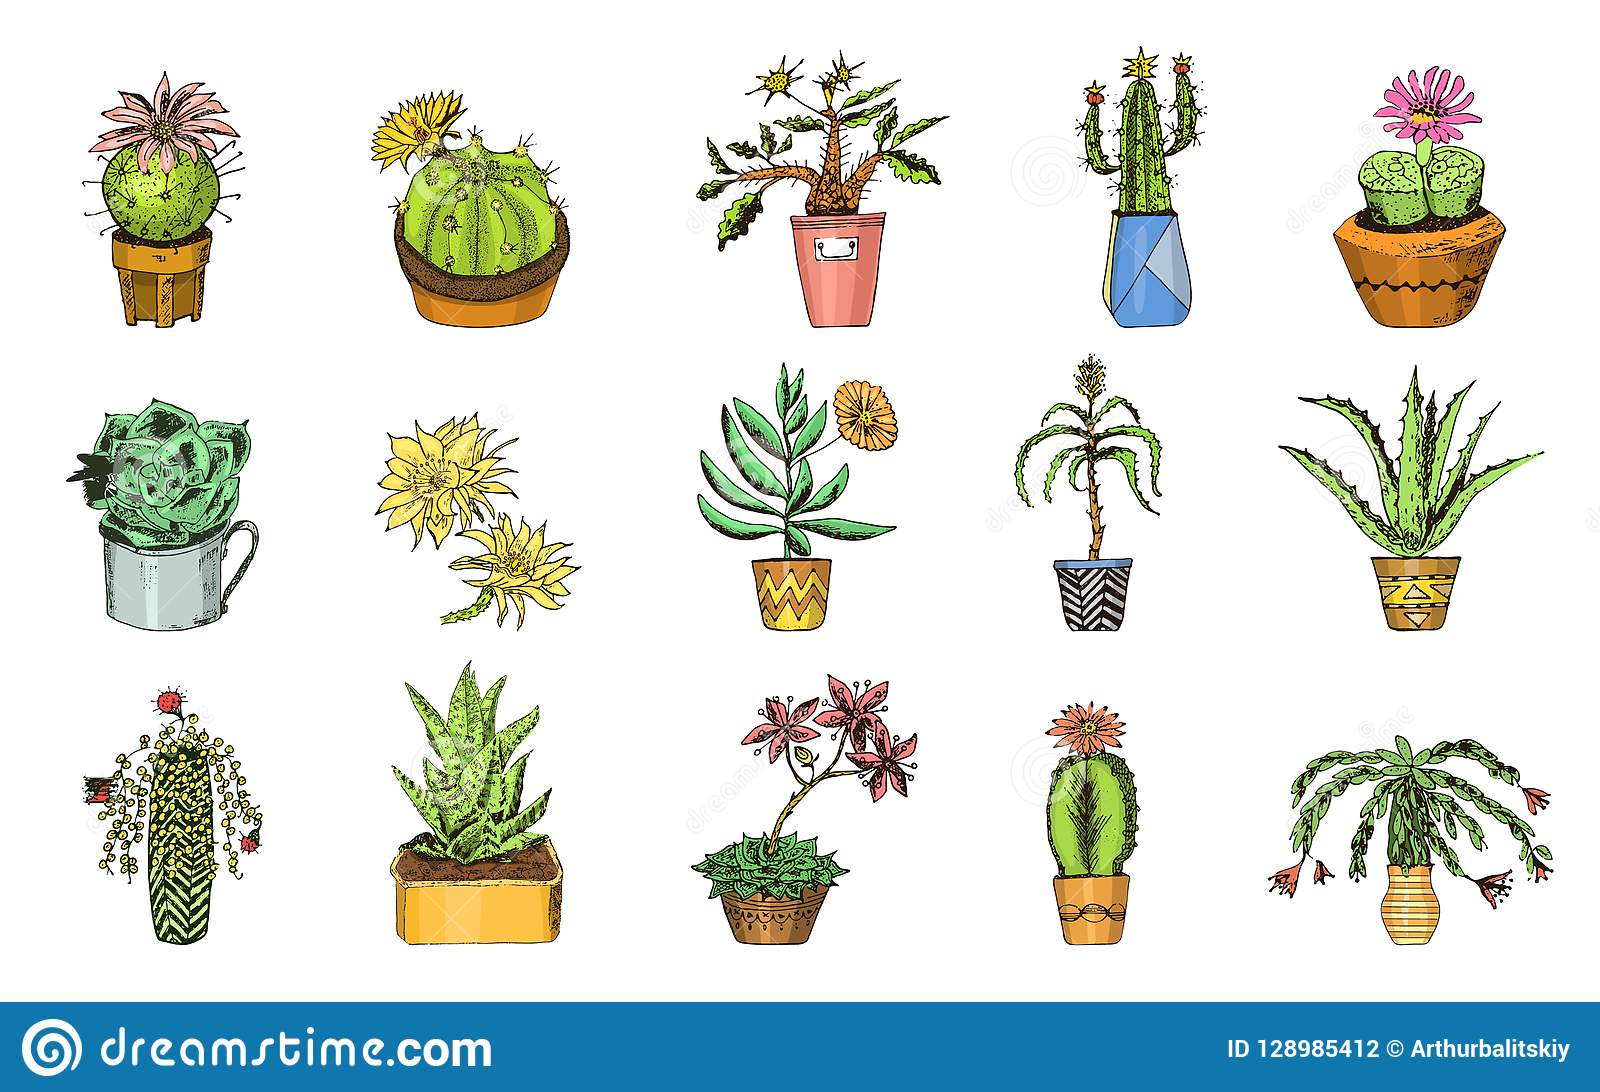 Set Of Cute Cactus And Succulents For Cards Stickers For Girls Mexican Houseplants Kawaii Cacti Engraved Hand Drawn Stock Vector Illustration Of Home Background 128985412